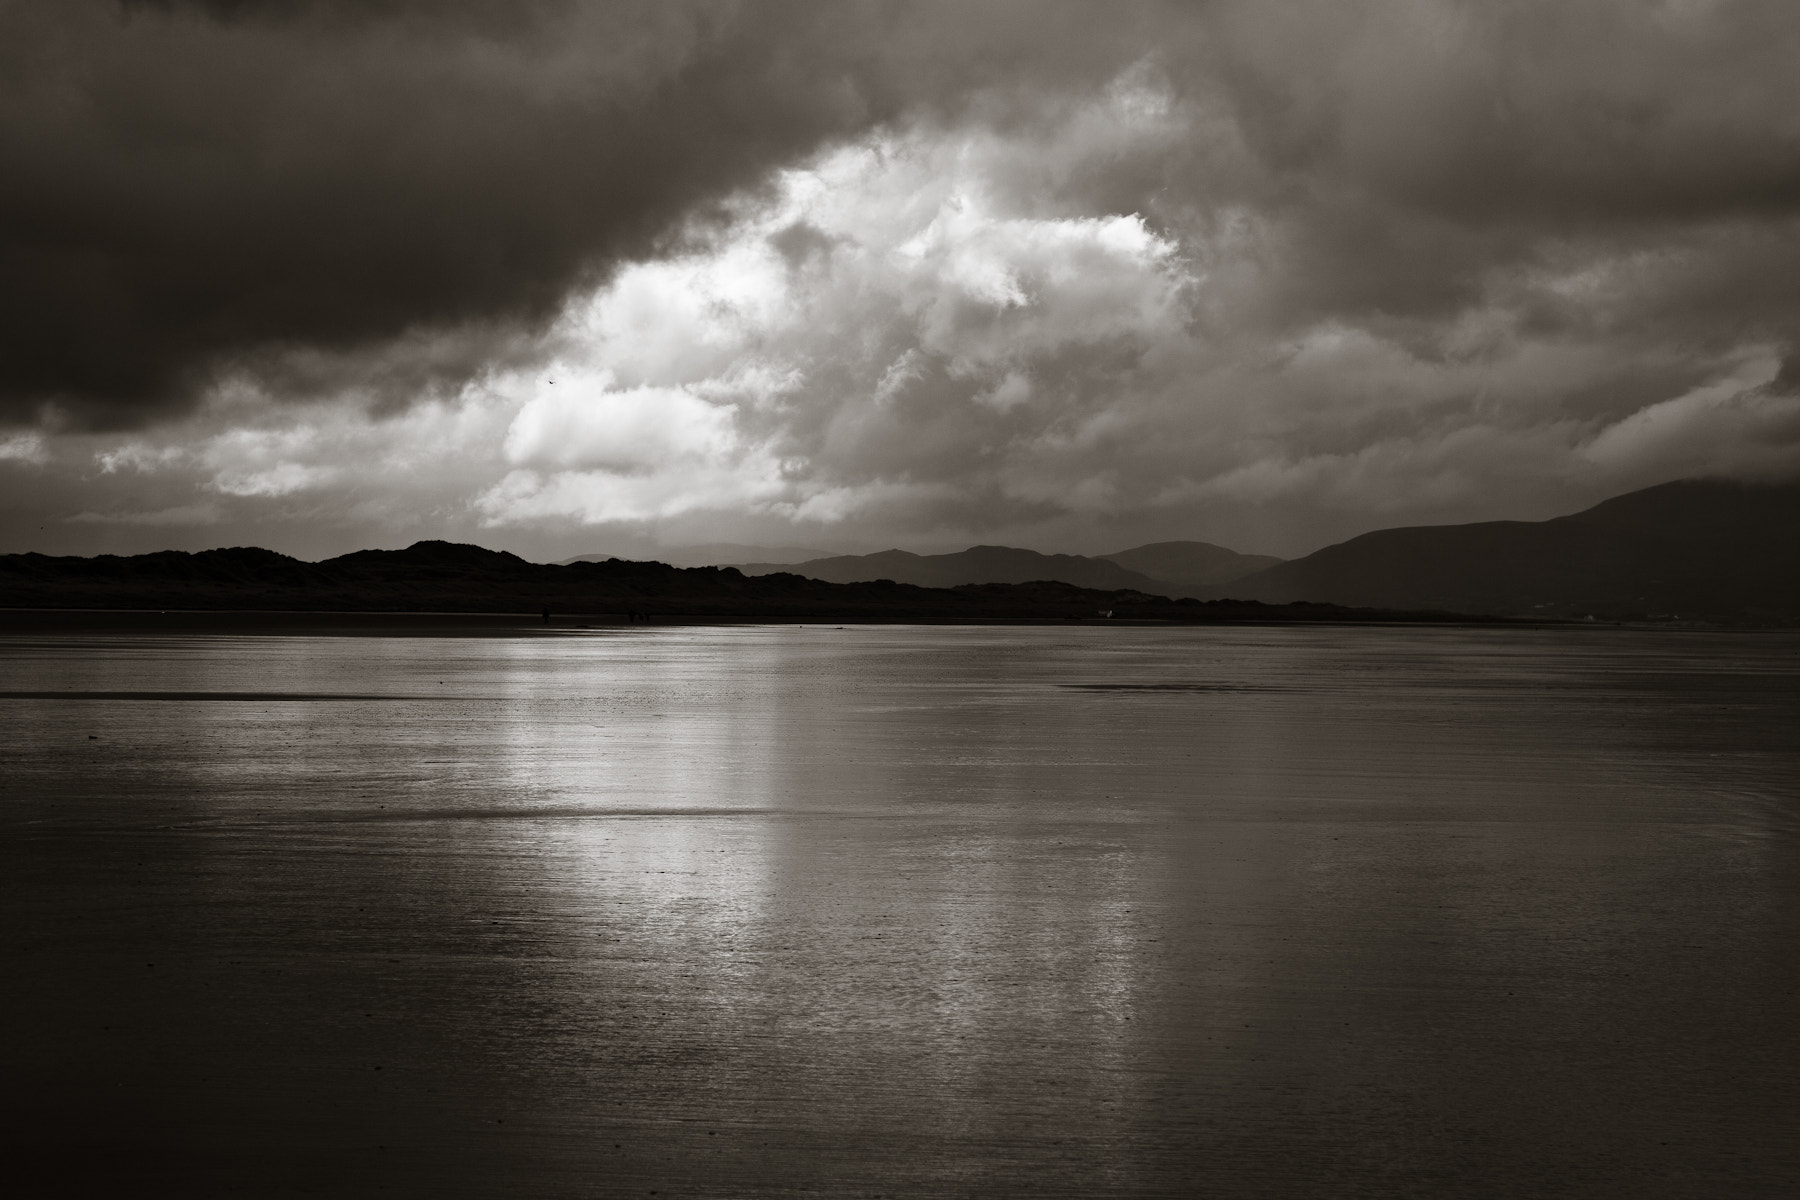 Photograph Inch Strand, Kerry by Noel Kelly on 500px